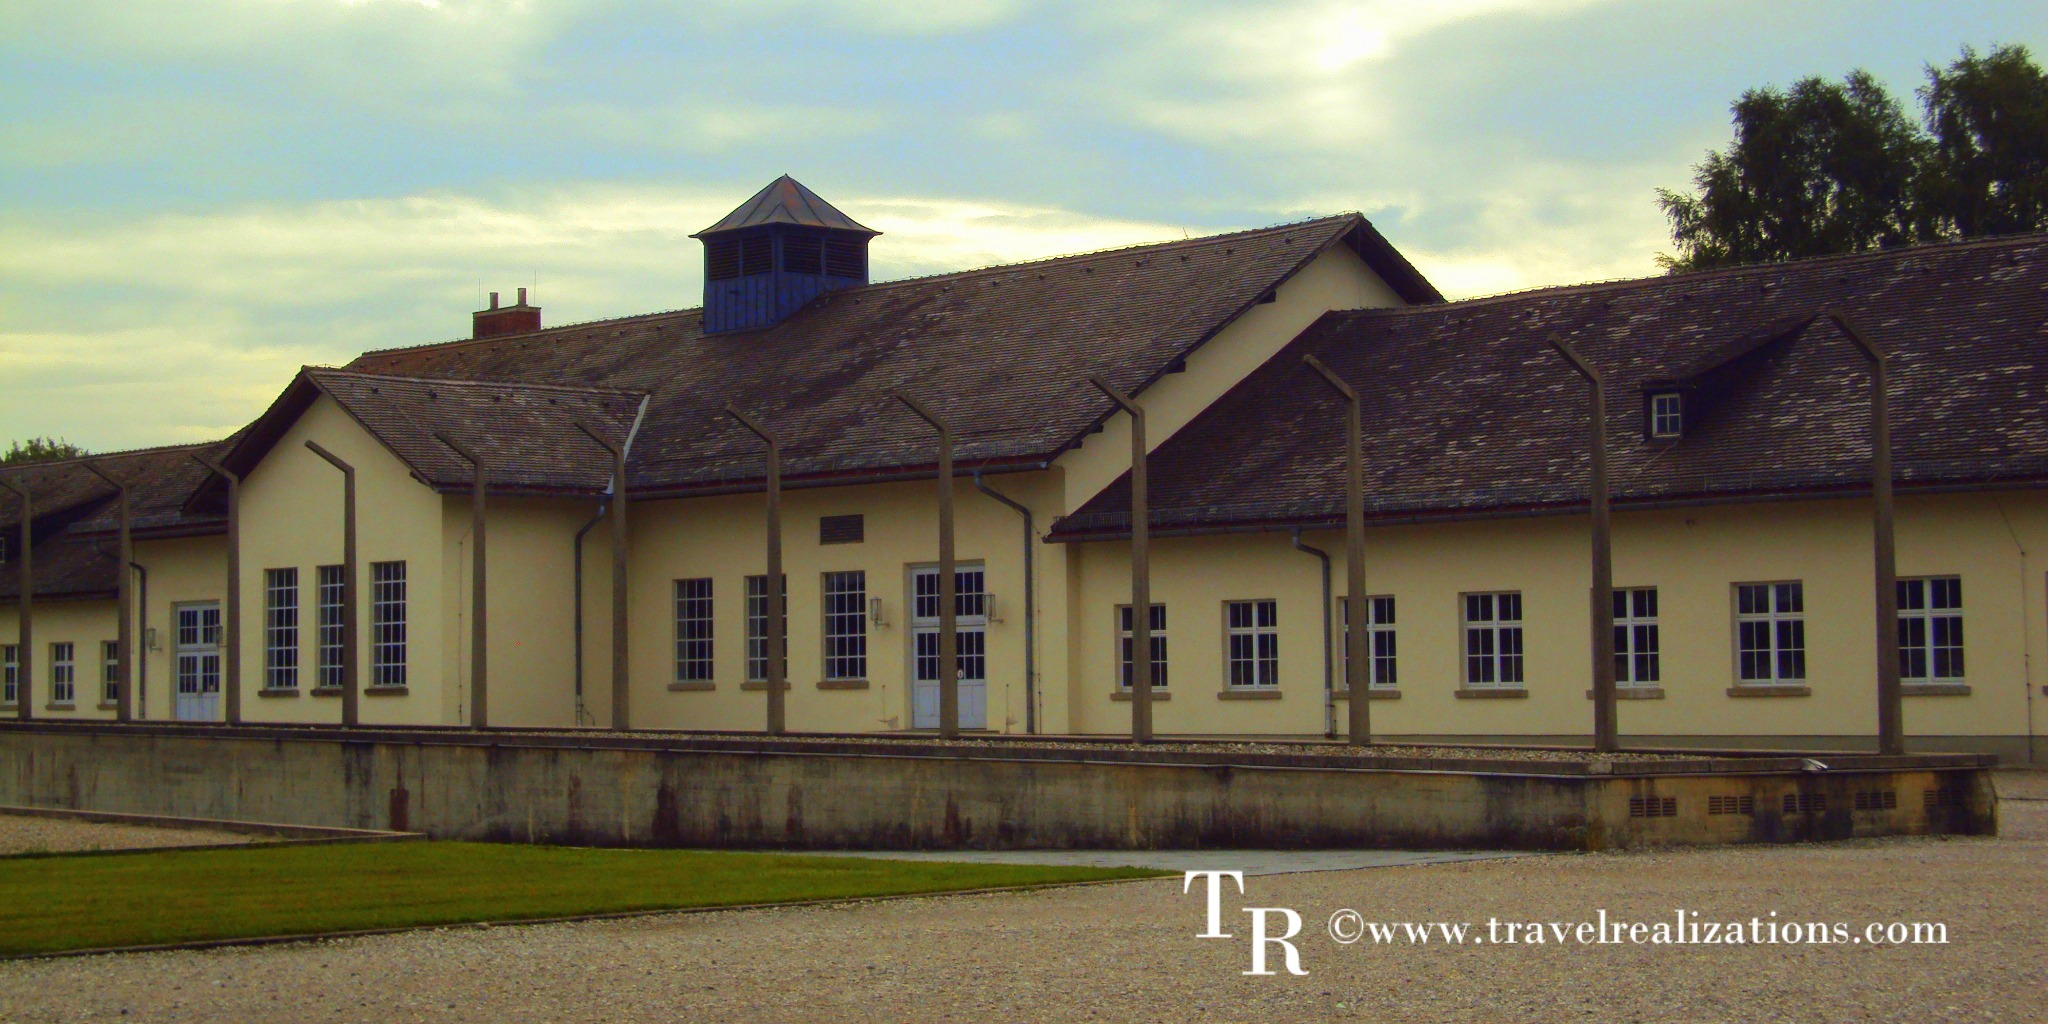 Dachau Concentration Camp Memorial Site (Germany)